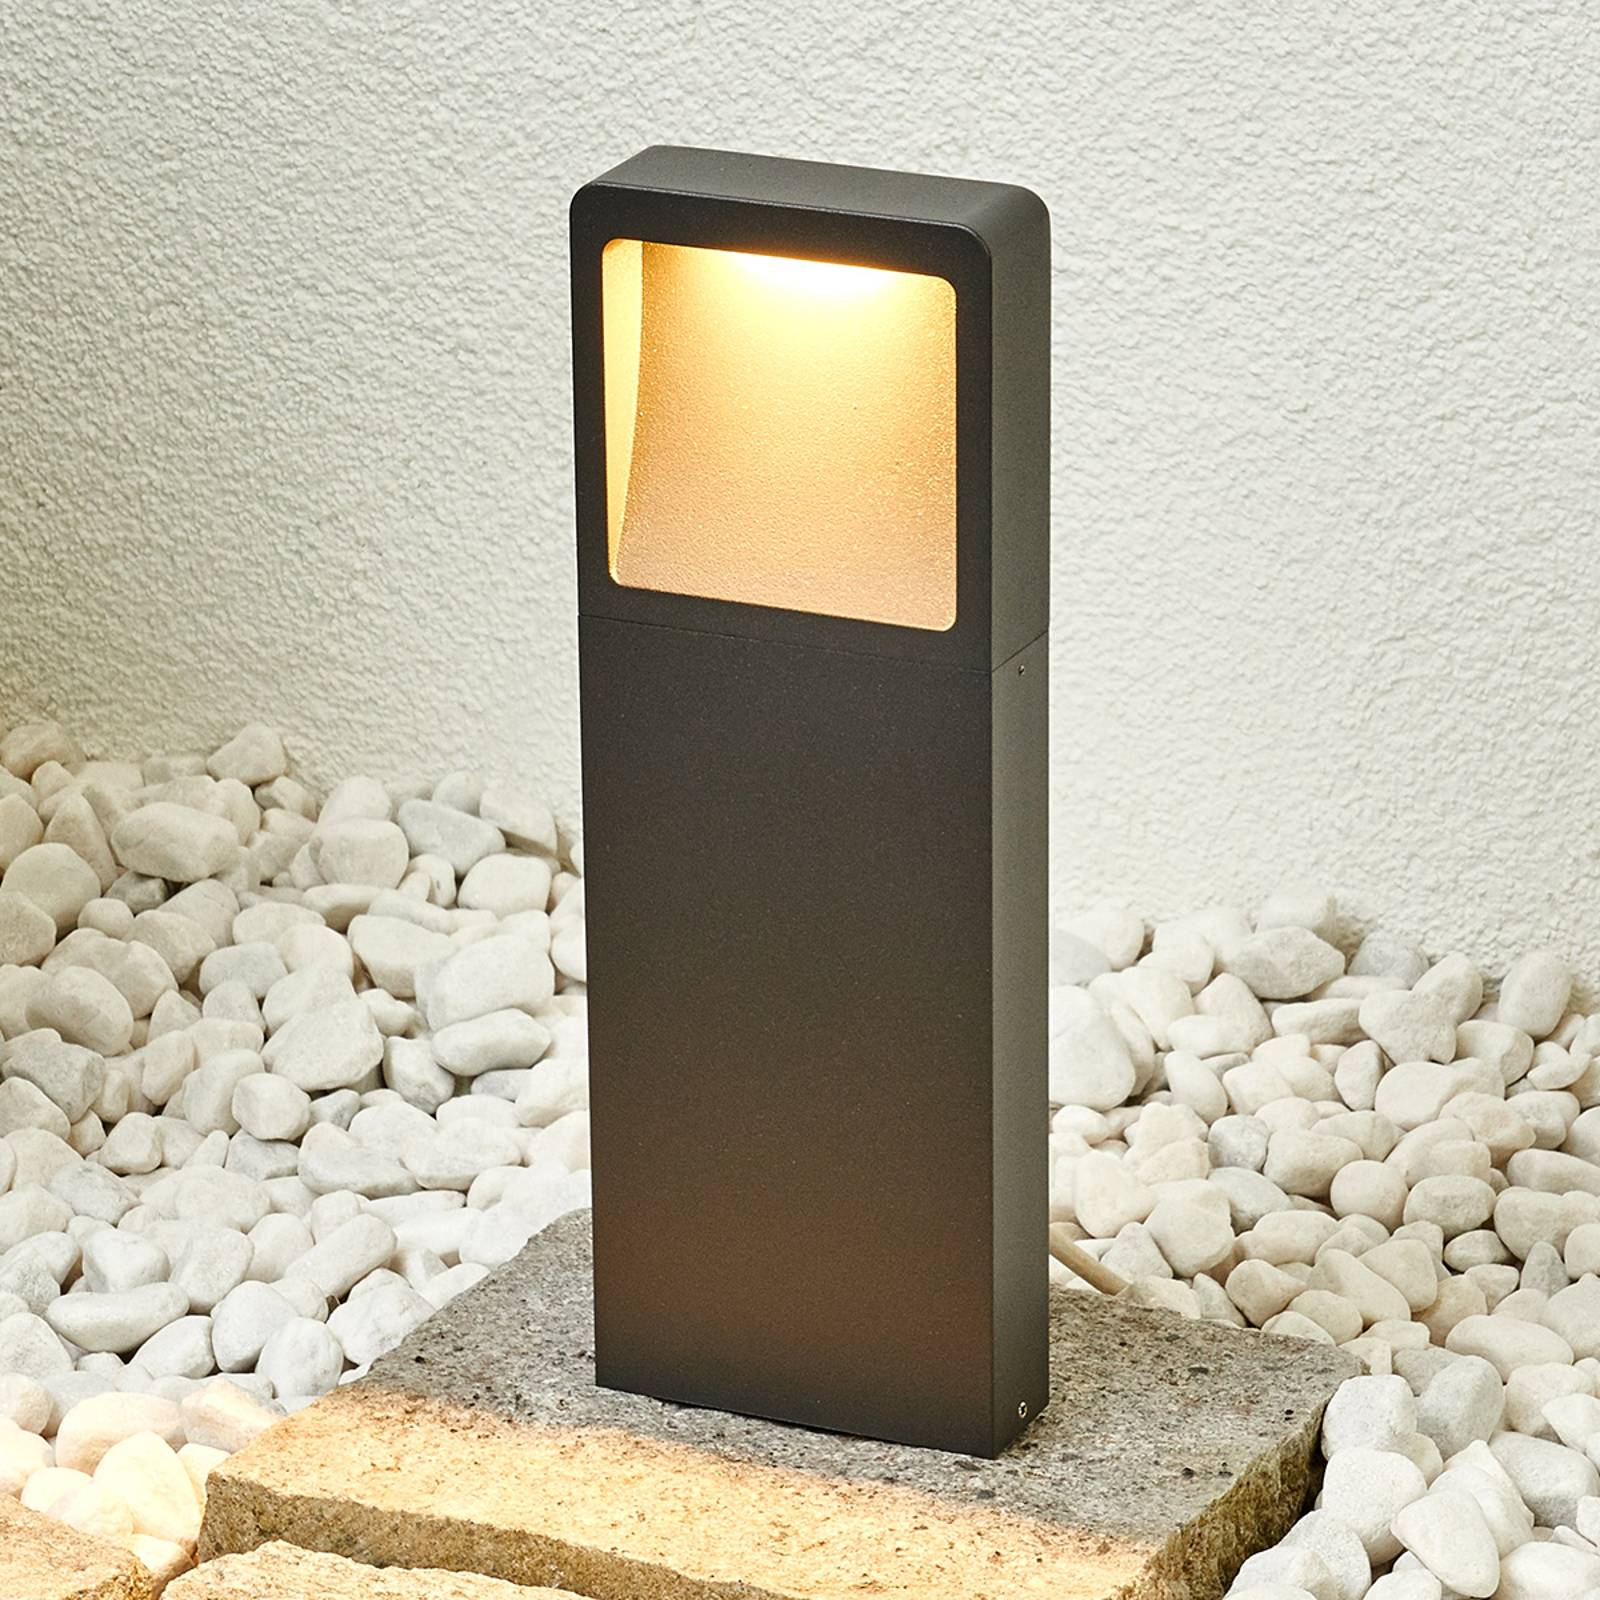 Modern Leya LED pillar light from Lampenwelt.com